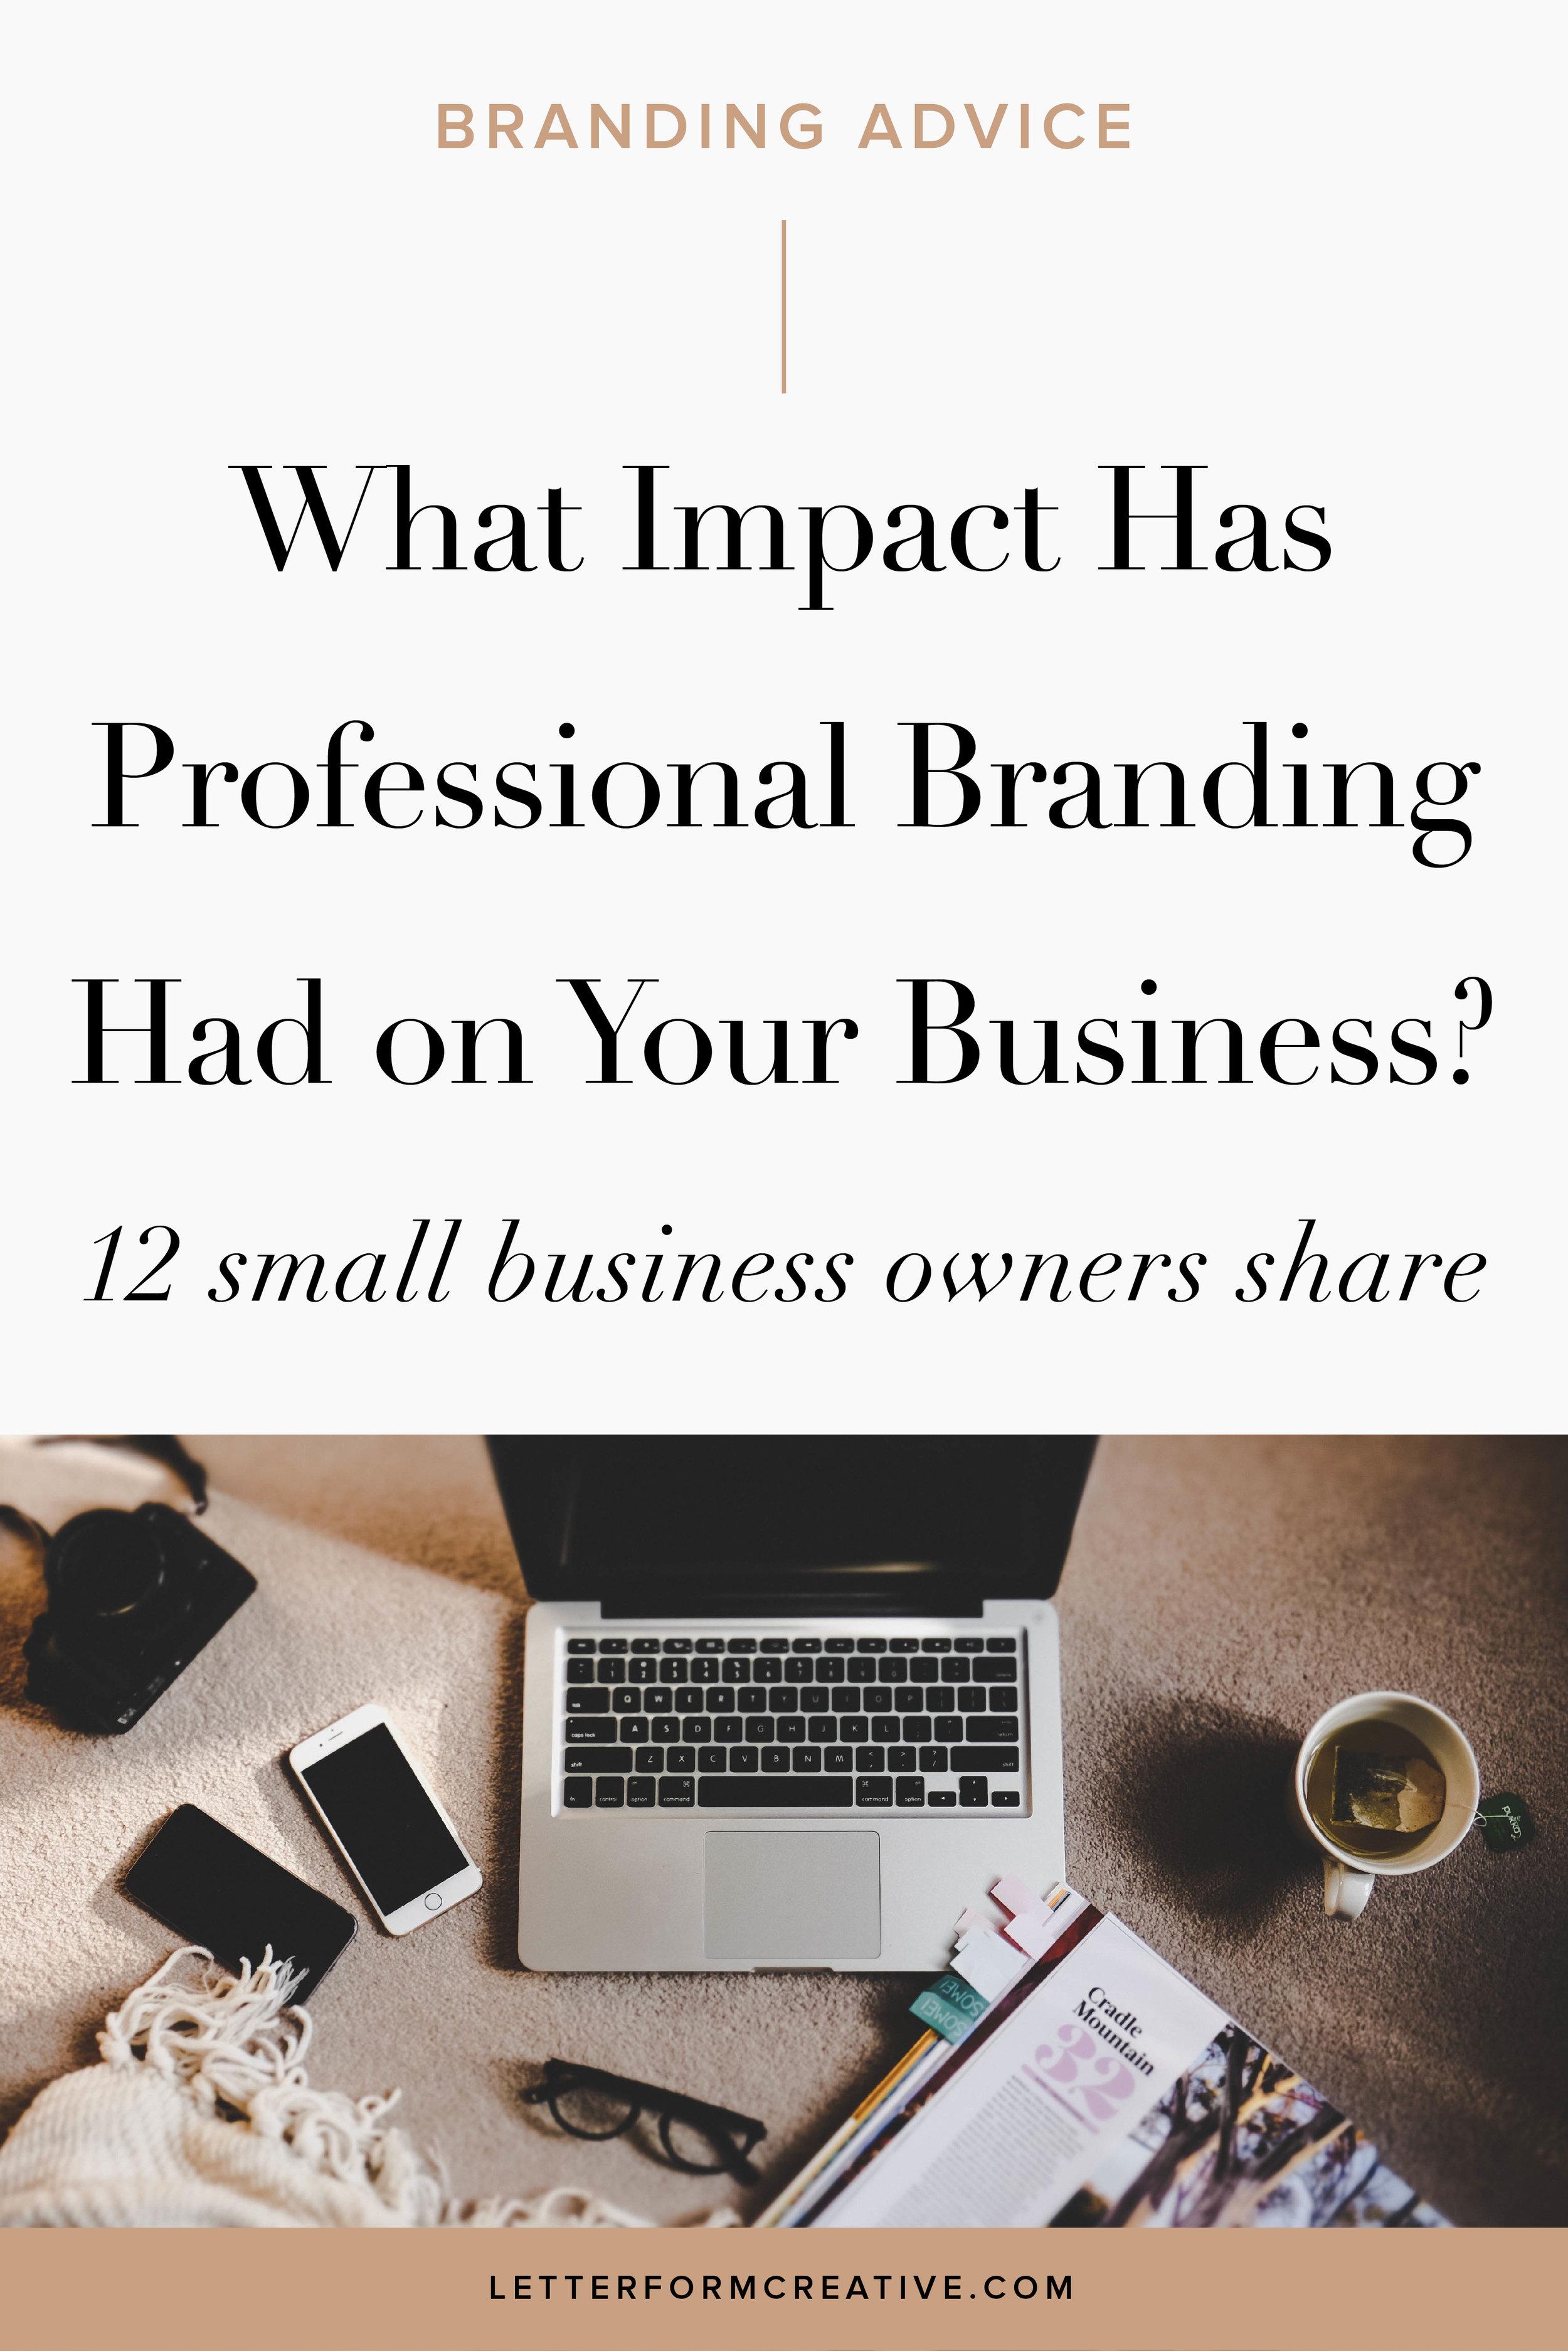 Are you still doing your own branding for your small business? Here is the incentive you need to hire a professional designer to design your brand identity. This blog interview with 12 small business owners provides the inspiration and motivation you need to invest in professional branding. The consensus is that it's the best business investment many have made. It will move your business forward, give you confidence, and change your mindset.Click through for more ideas and insights on how professional branding can take your business to the next level!